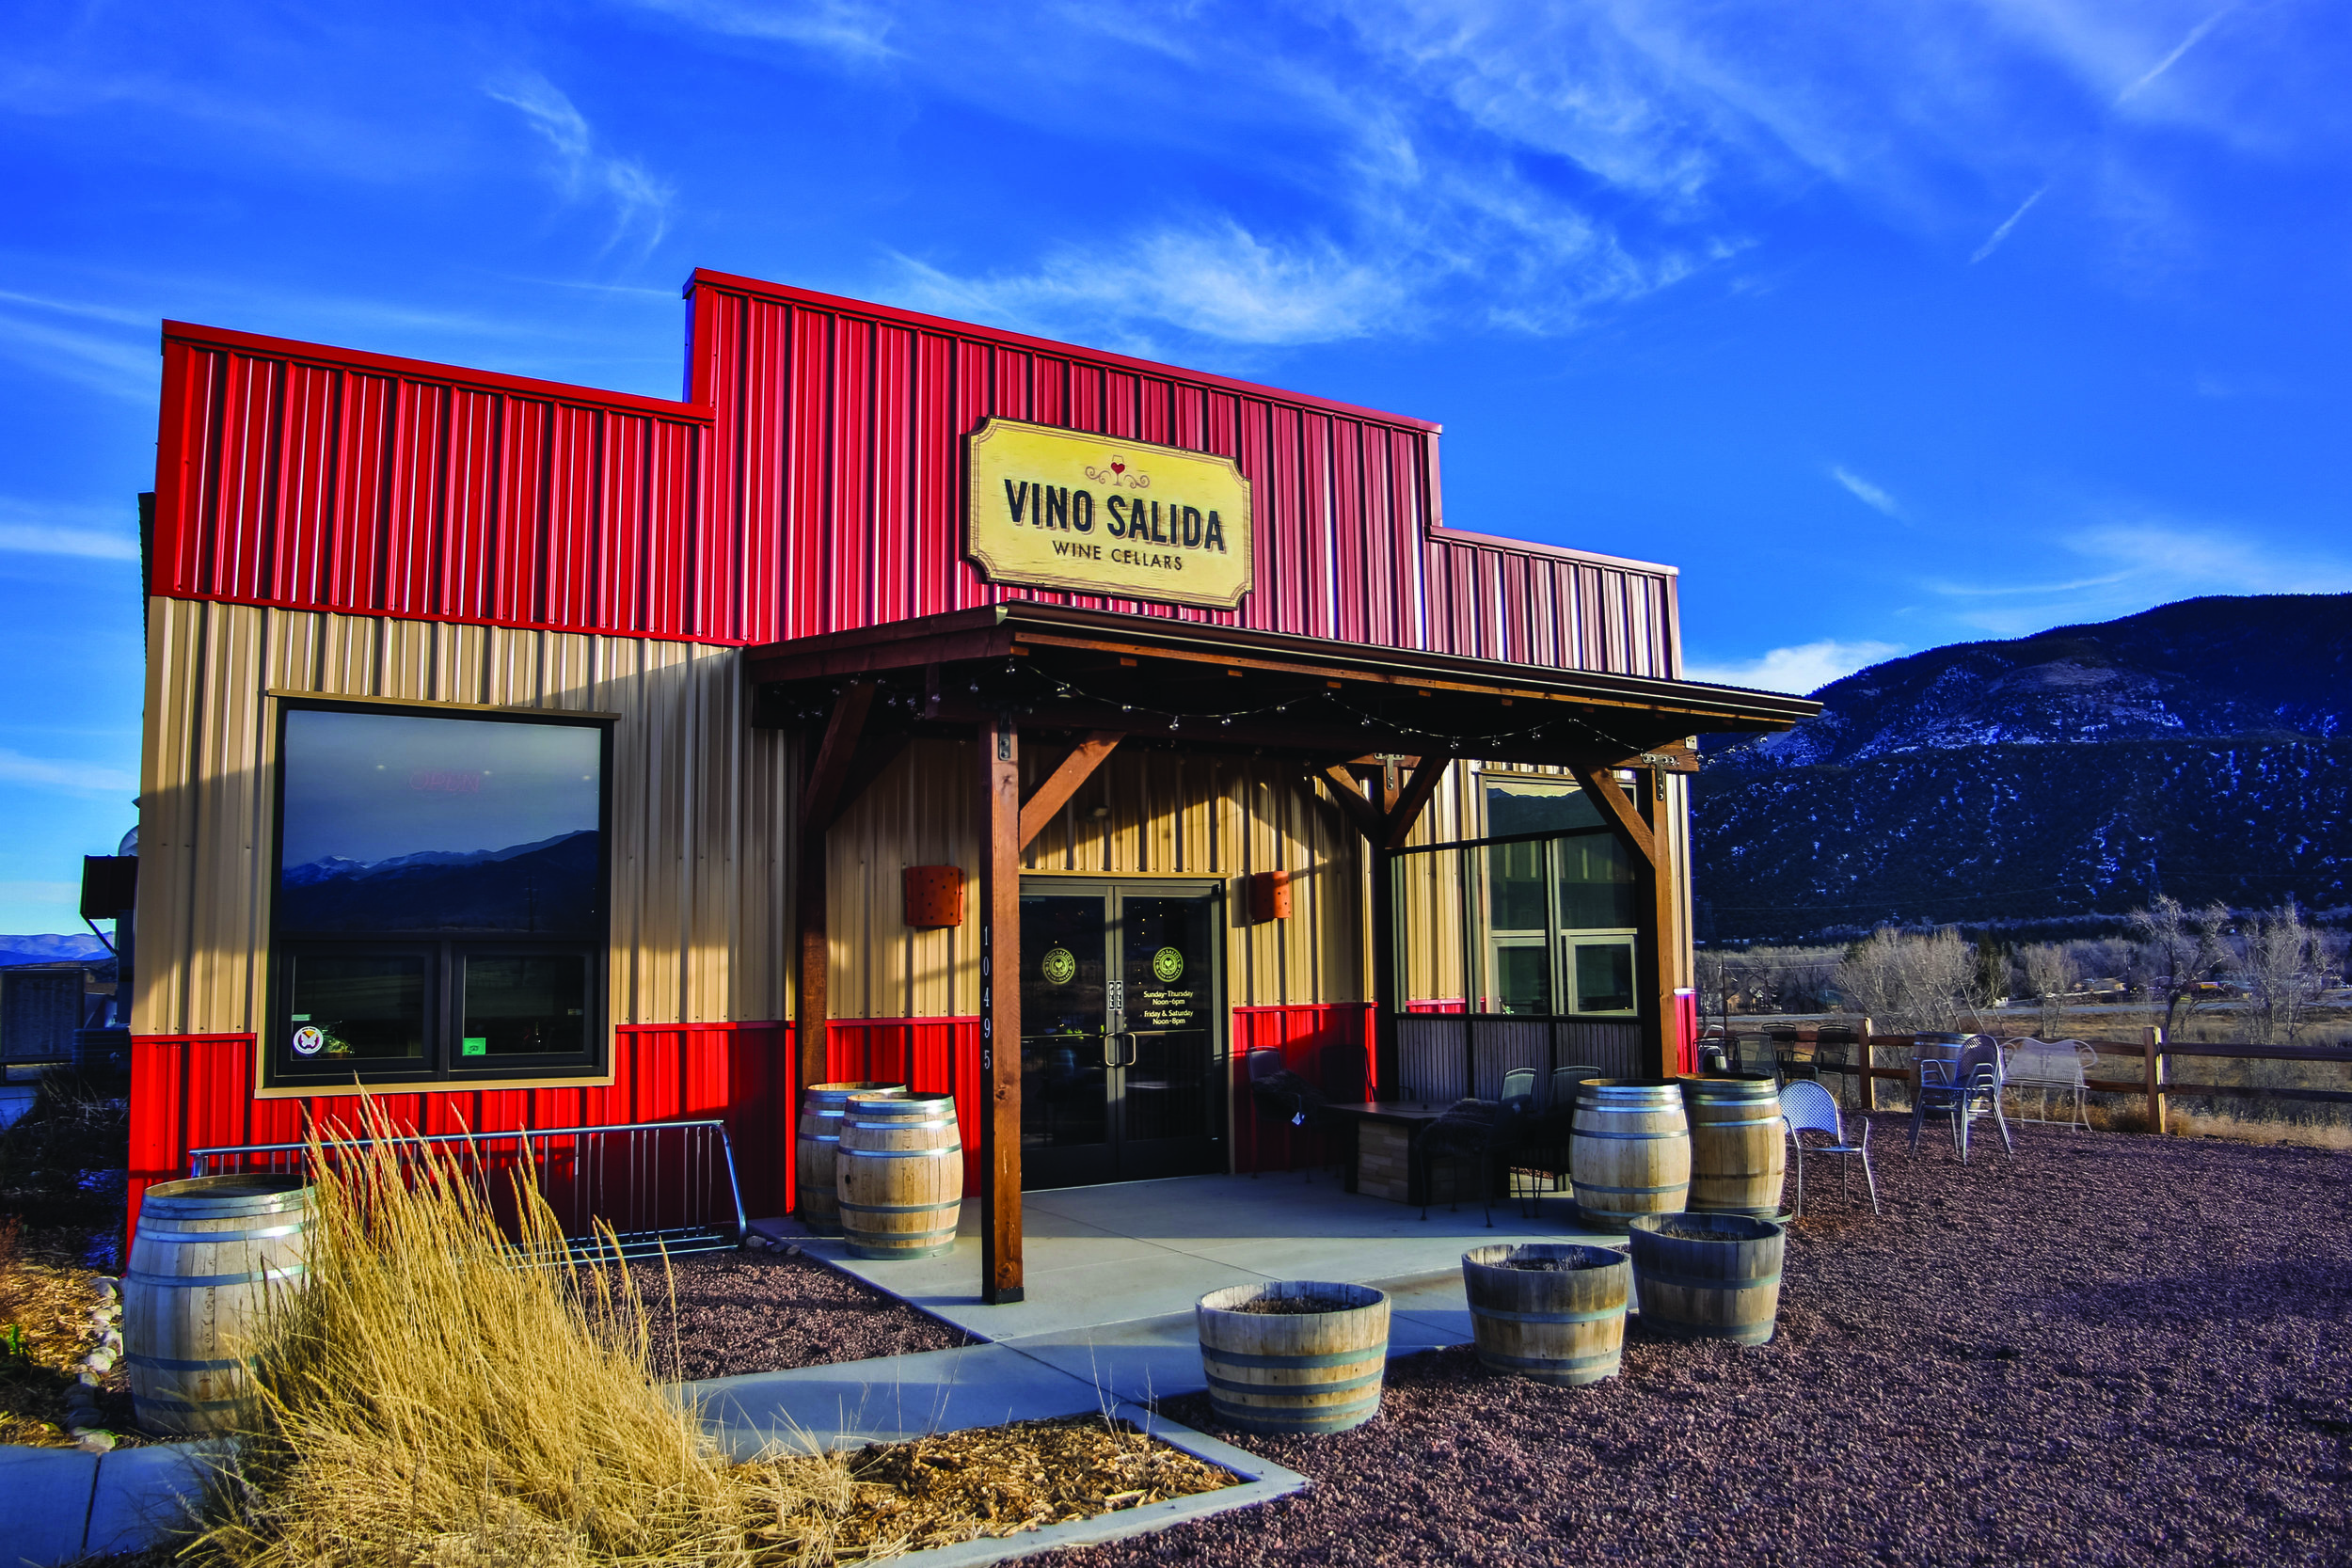 Vino Salida's Poncha Springs wine bar and tasting room sits in the heart of Chaffee County just off U.S. Highways 50 and 285.